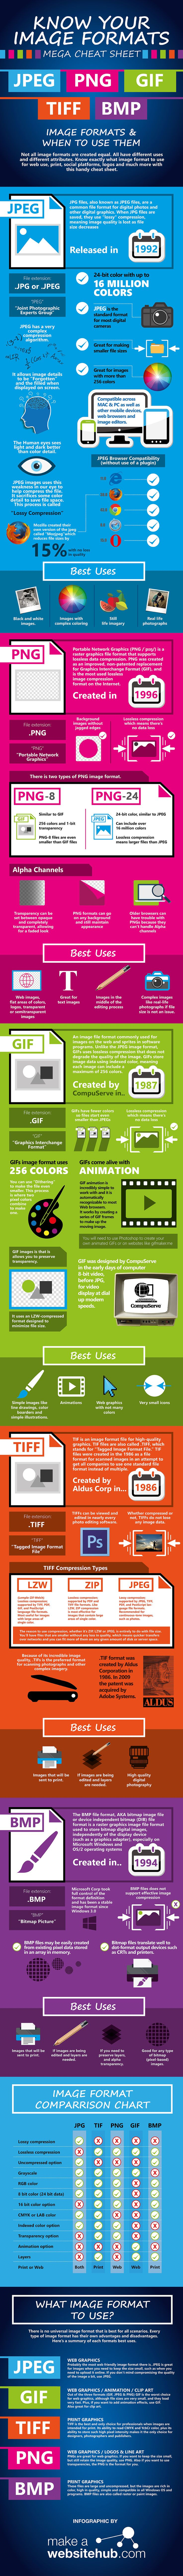 The importance of file types for your images and what each of the most important types mean. Which one are you using most? JPEG?